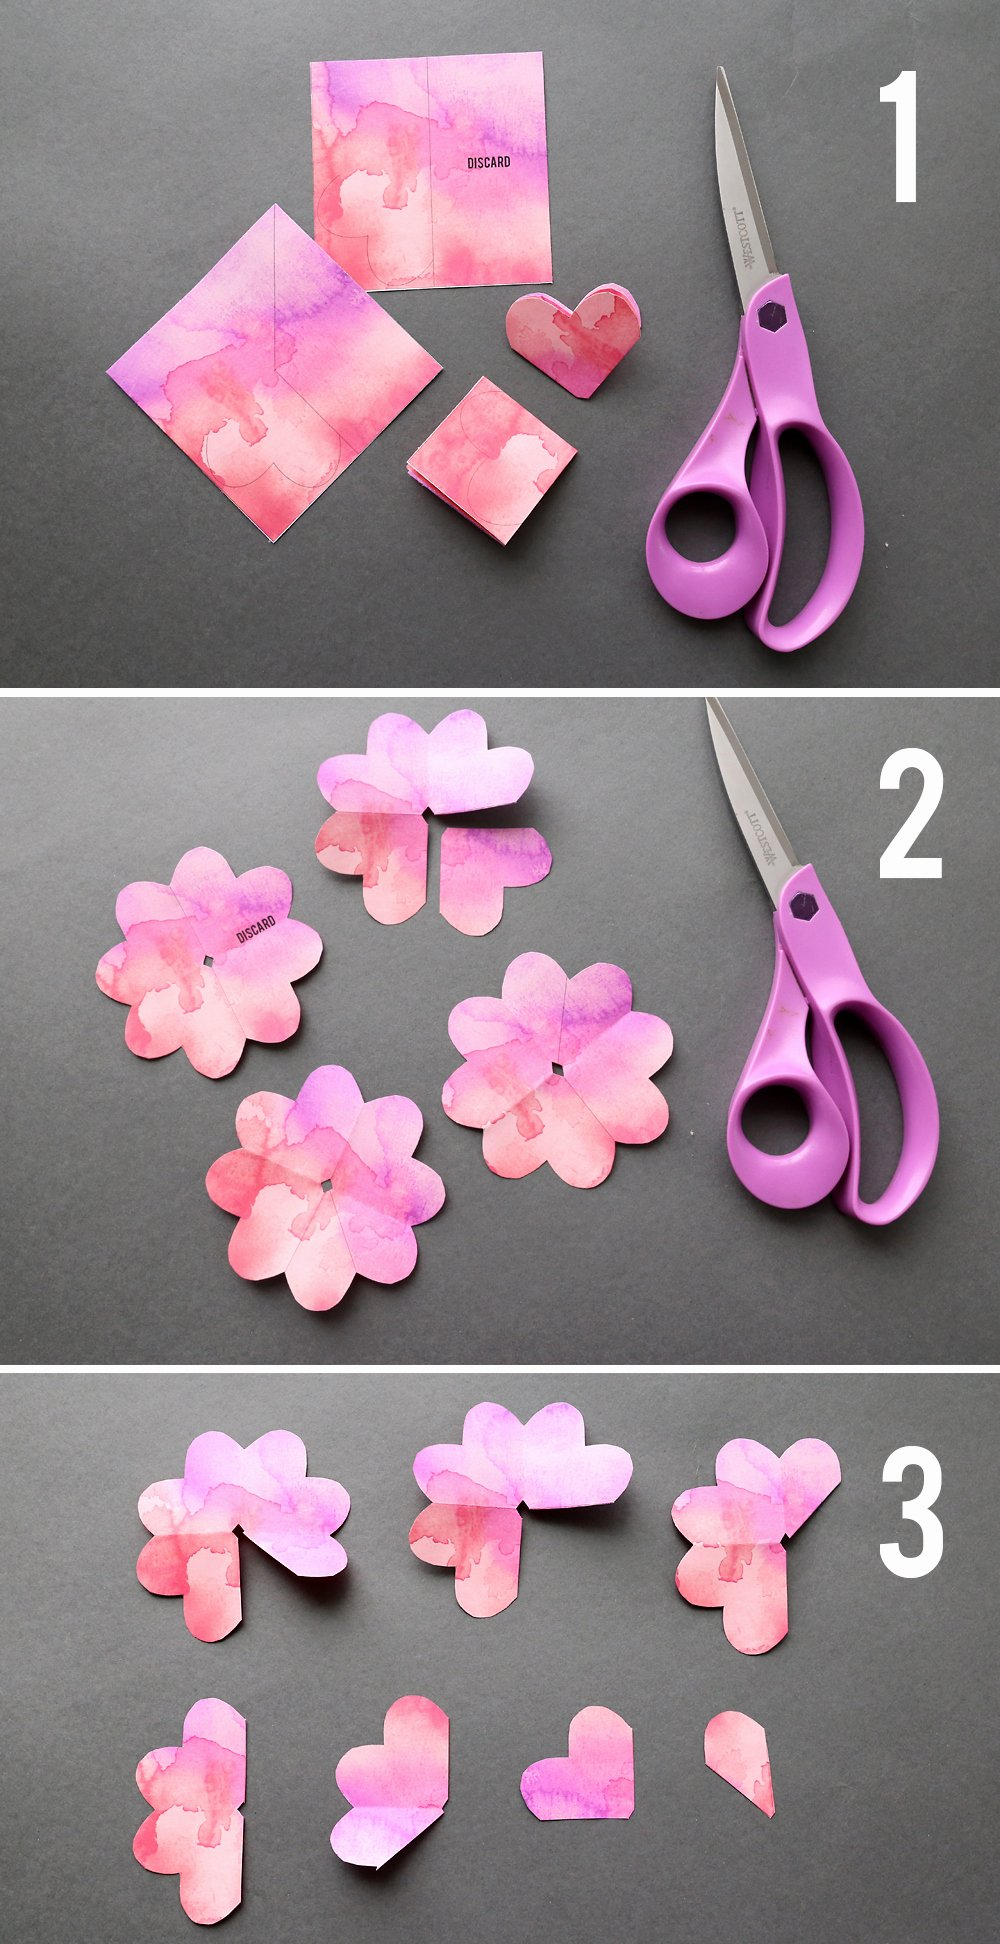 Diy Paper Flower Template Best Of Make Gorgeous Paper Roses with This Free Paper Rose